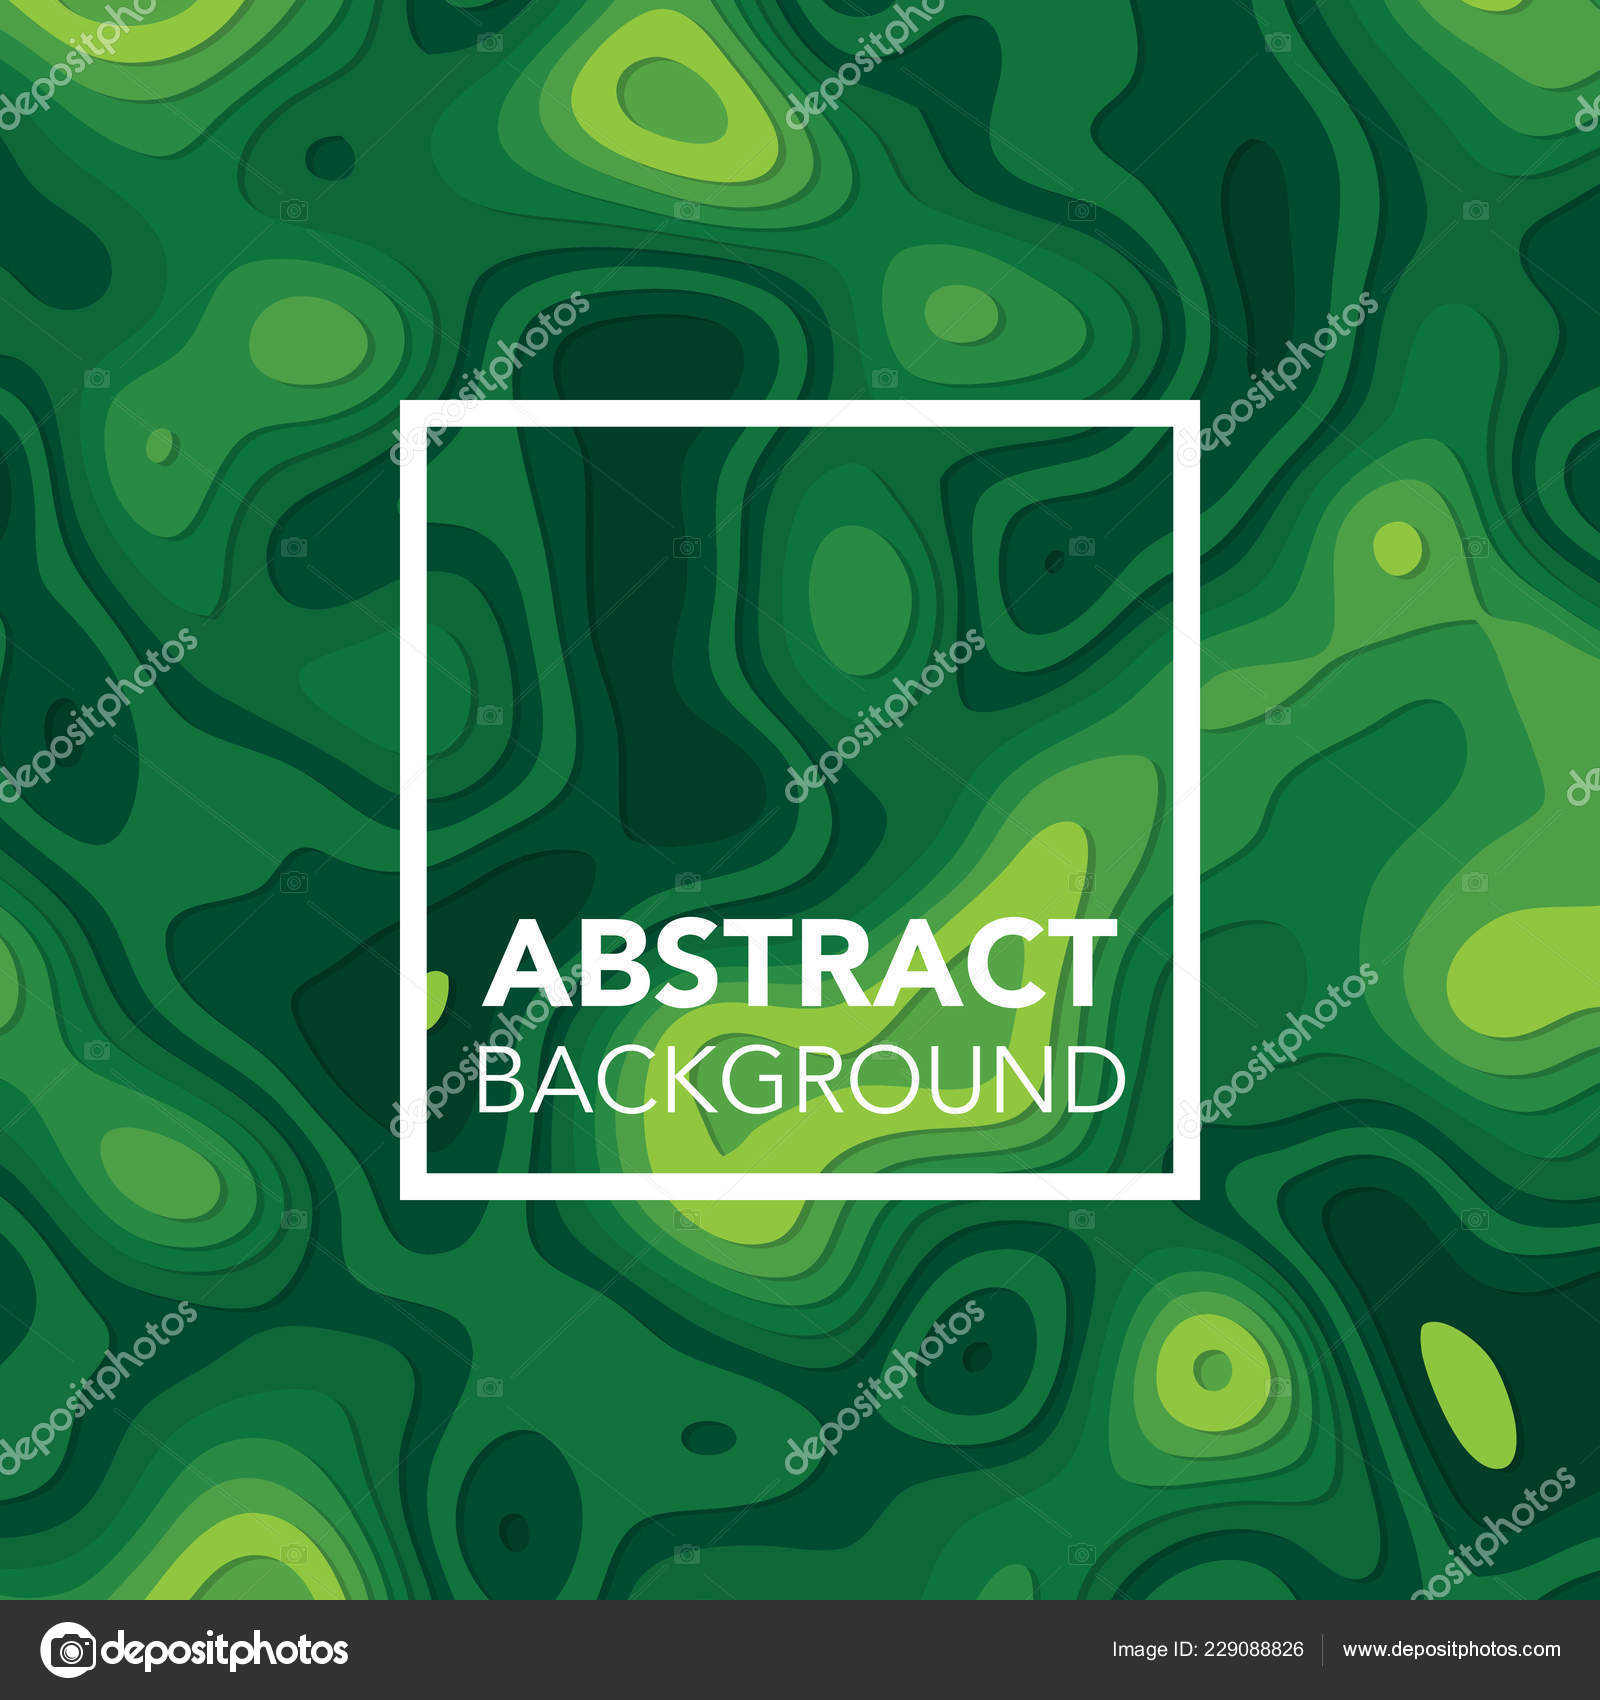 Green Abstract Background Paper Cut Shapes Available High